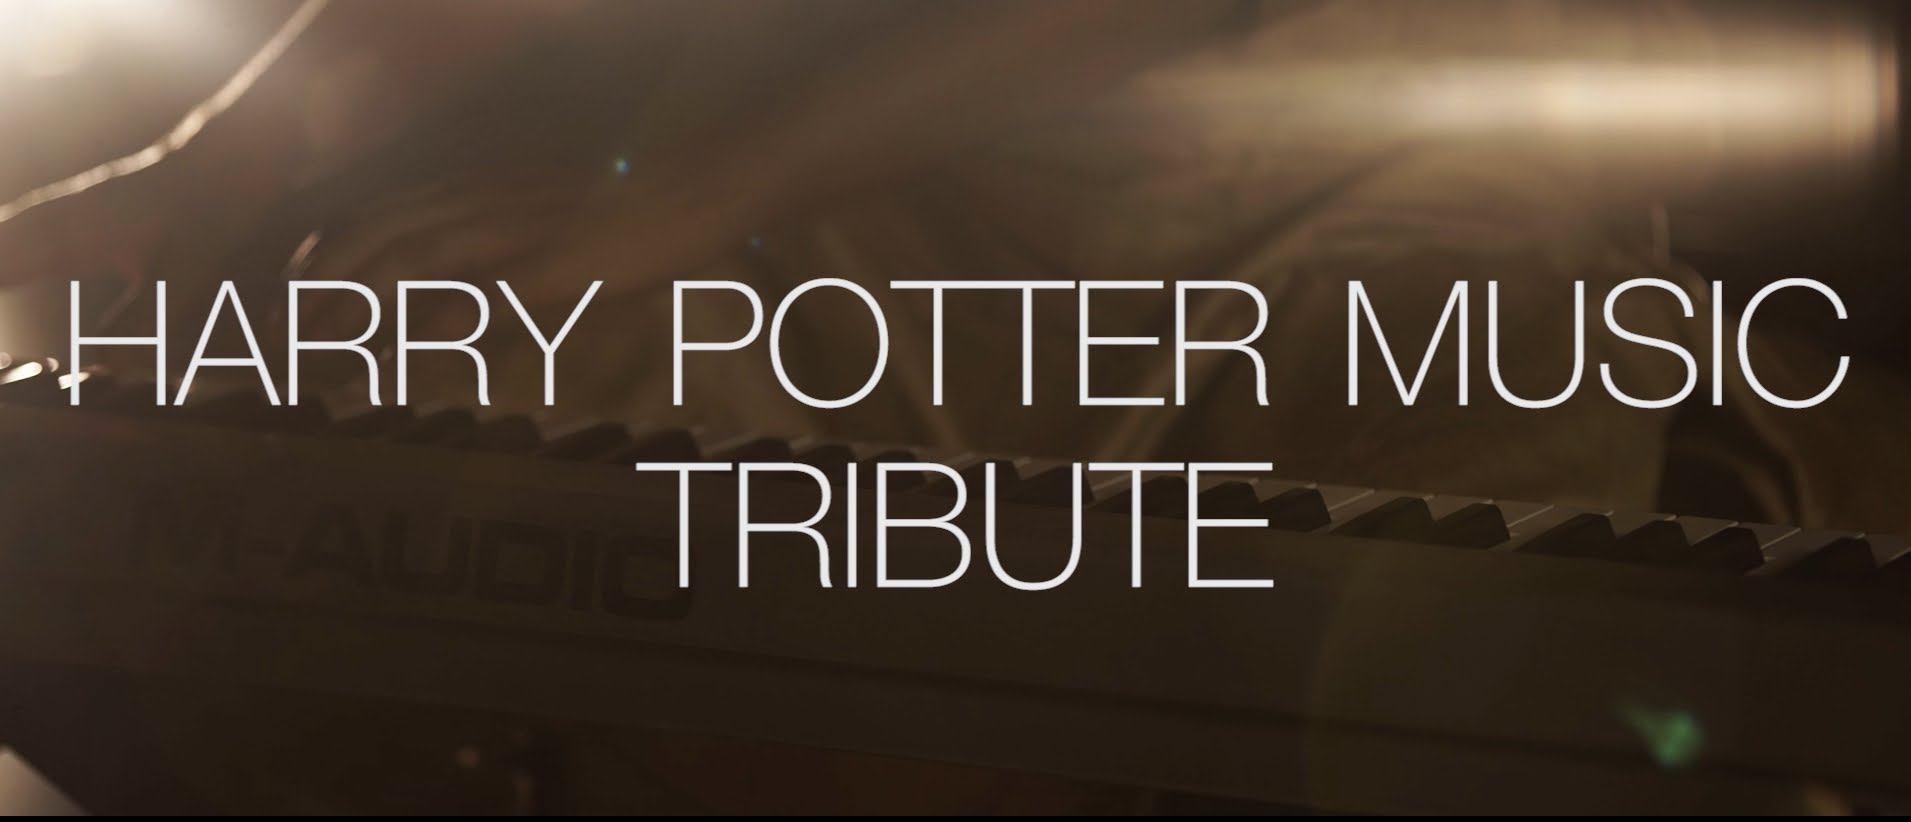 The Harry Potter Theme Song